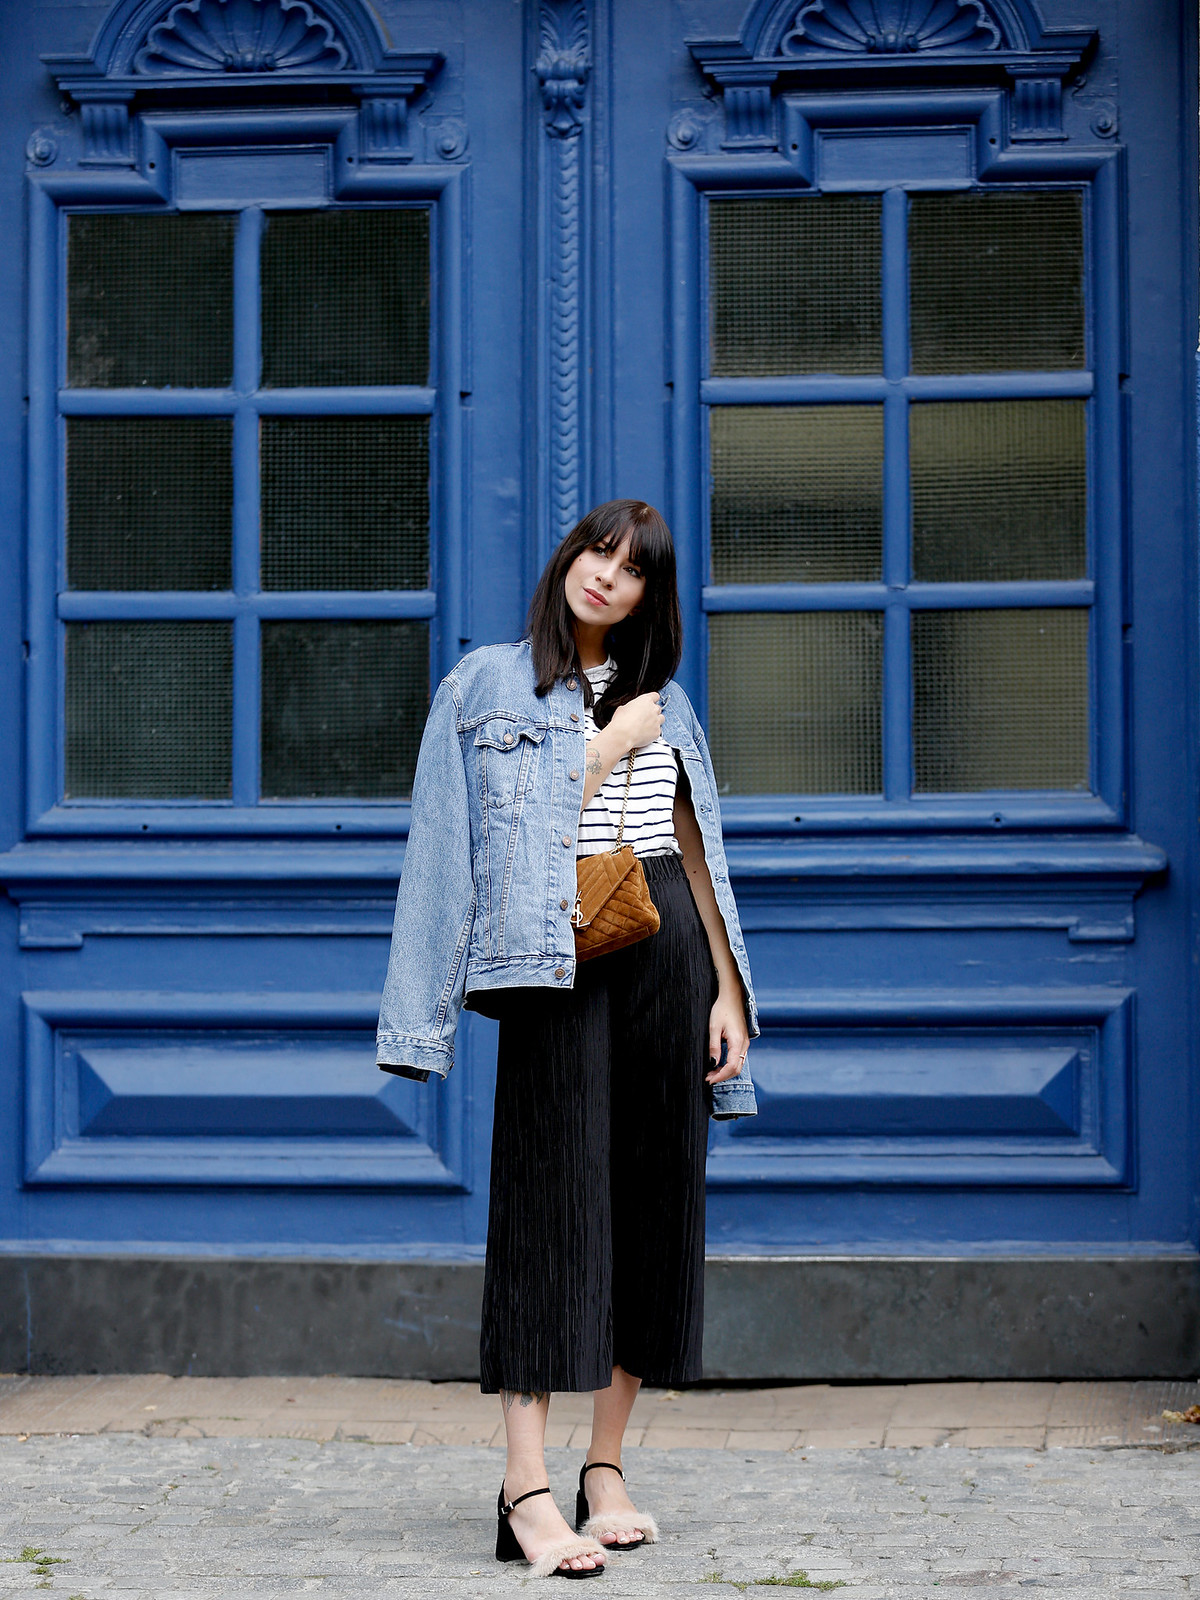 ootd outfit look lookbook denim style stripes ysl brown suede bag plissee pants zara furry sandals cats & dogs fashionblog ricarda schernus modeblogger germany berlin 4